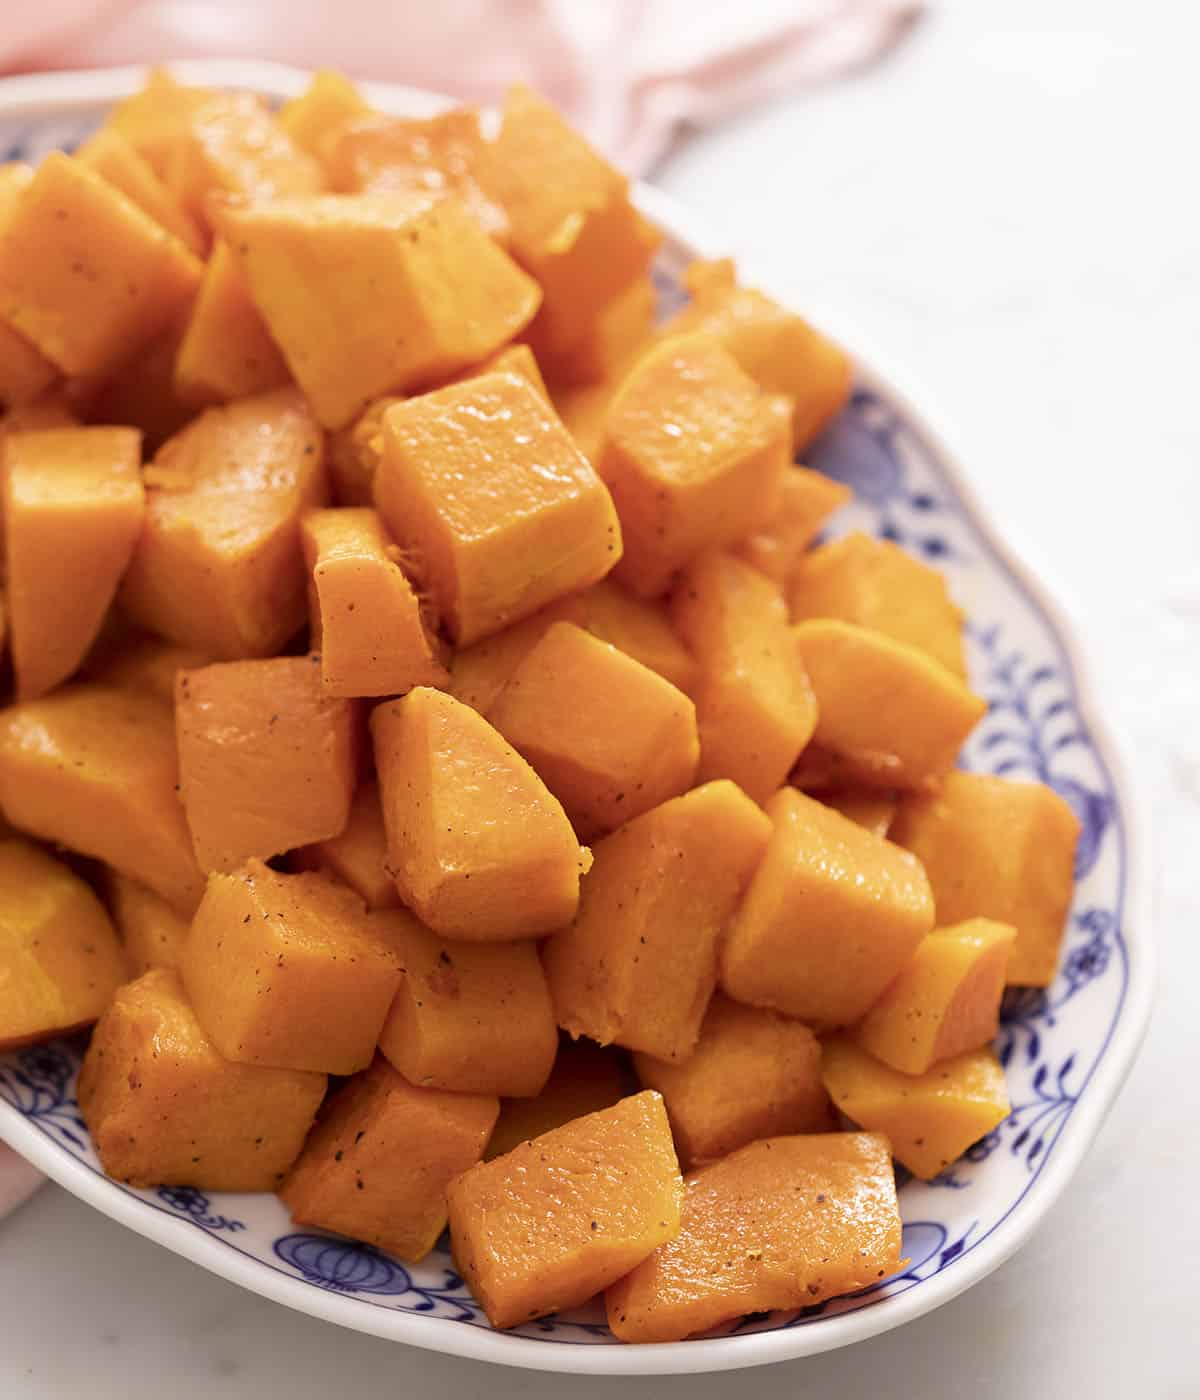 Roasted butternut squash in a blue and white serving dish.